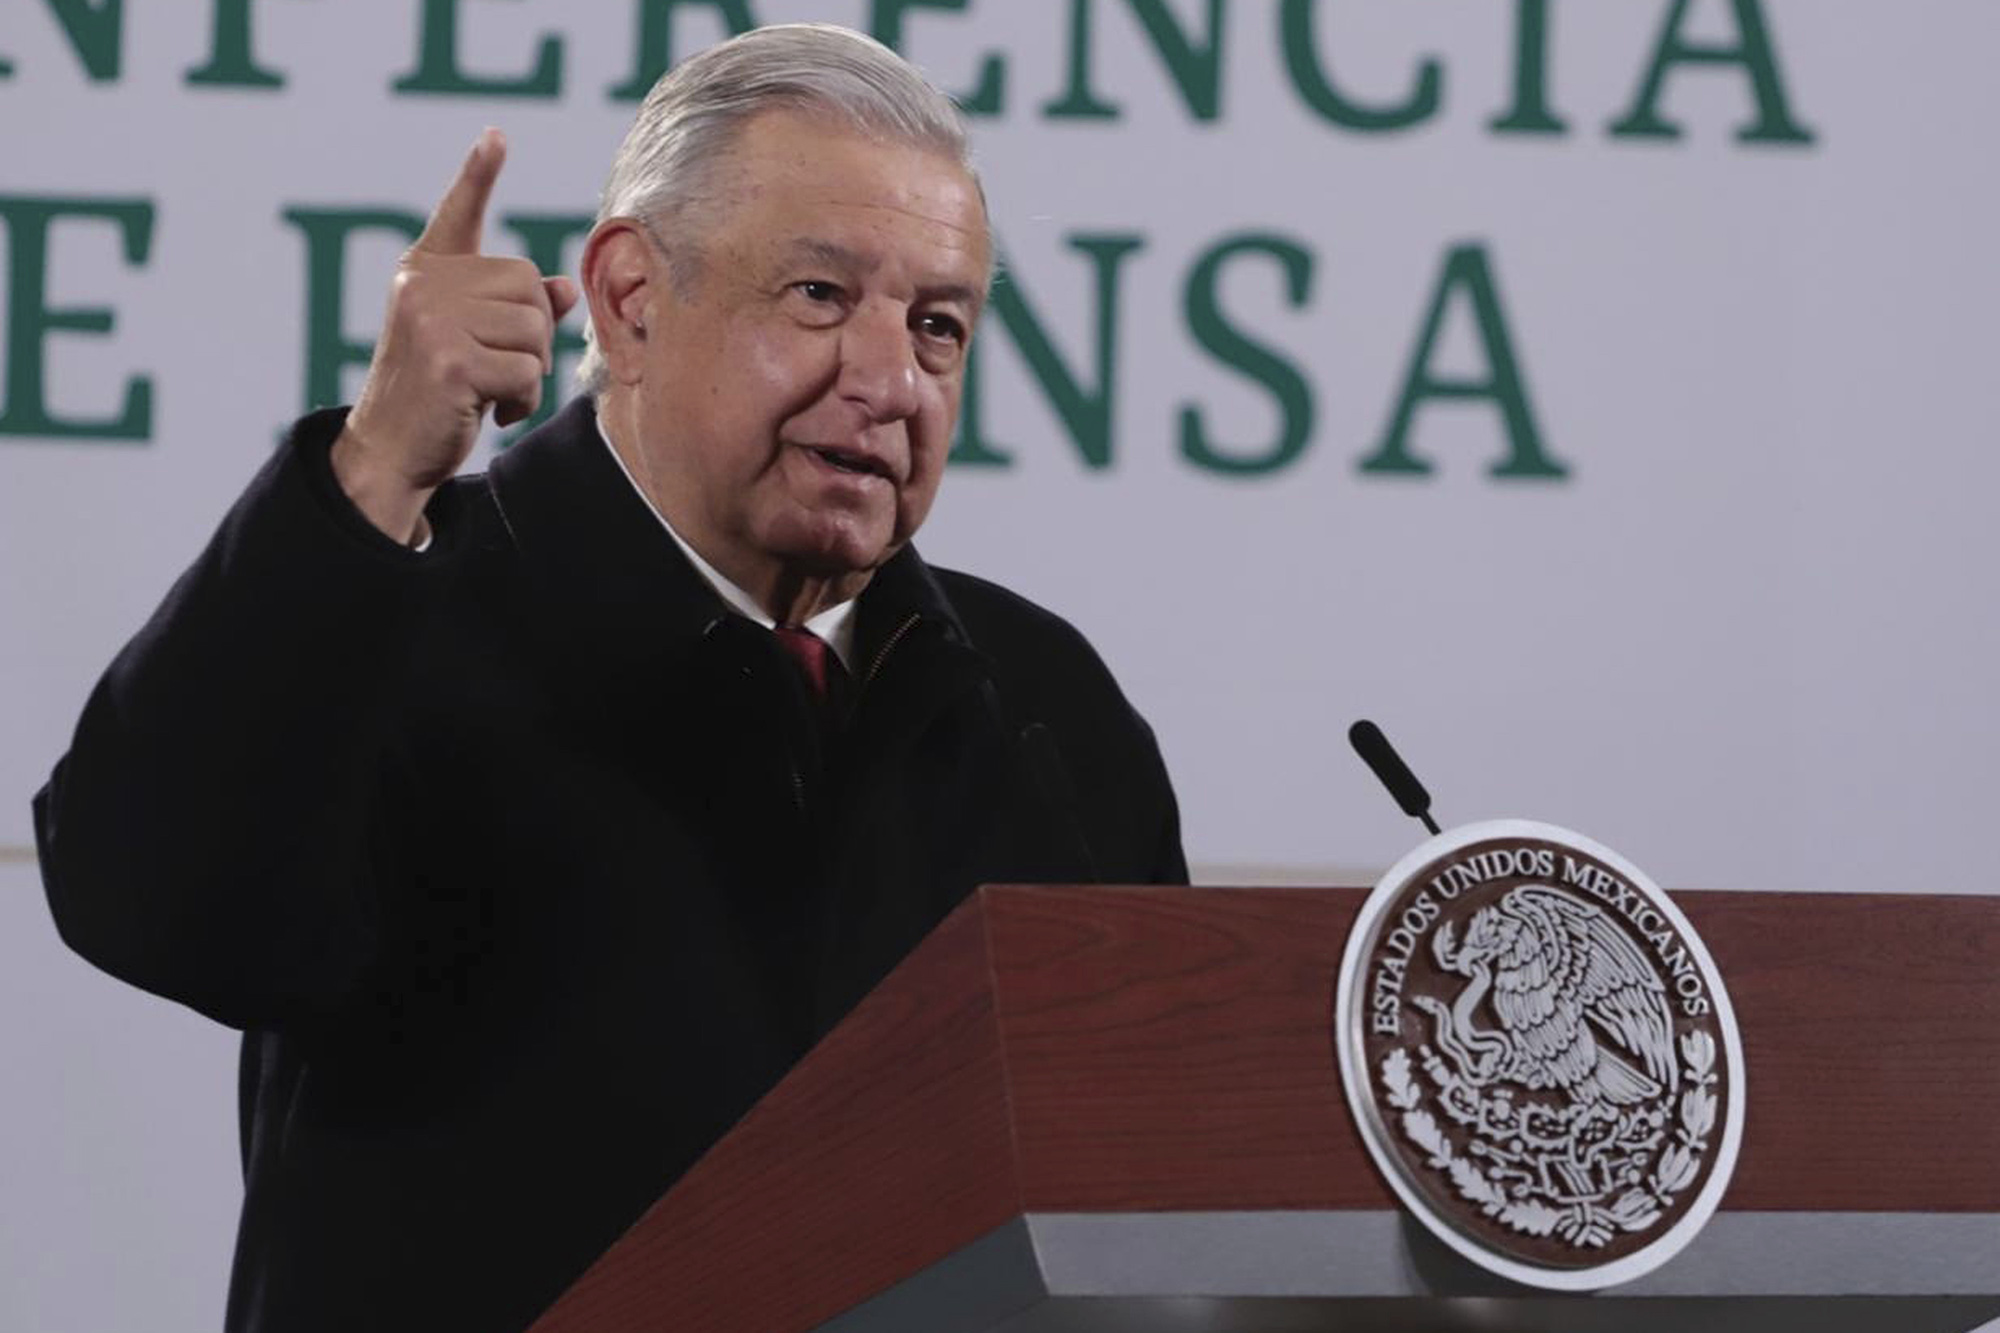 Andrés Manuel López Obrador, President of Mexico speaks during a press conference from the National Palace in Mexico City, Mexico on Thursday, January 7.